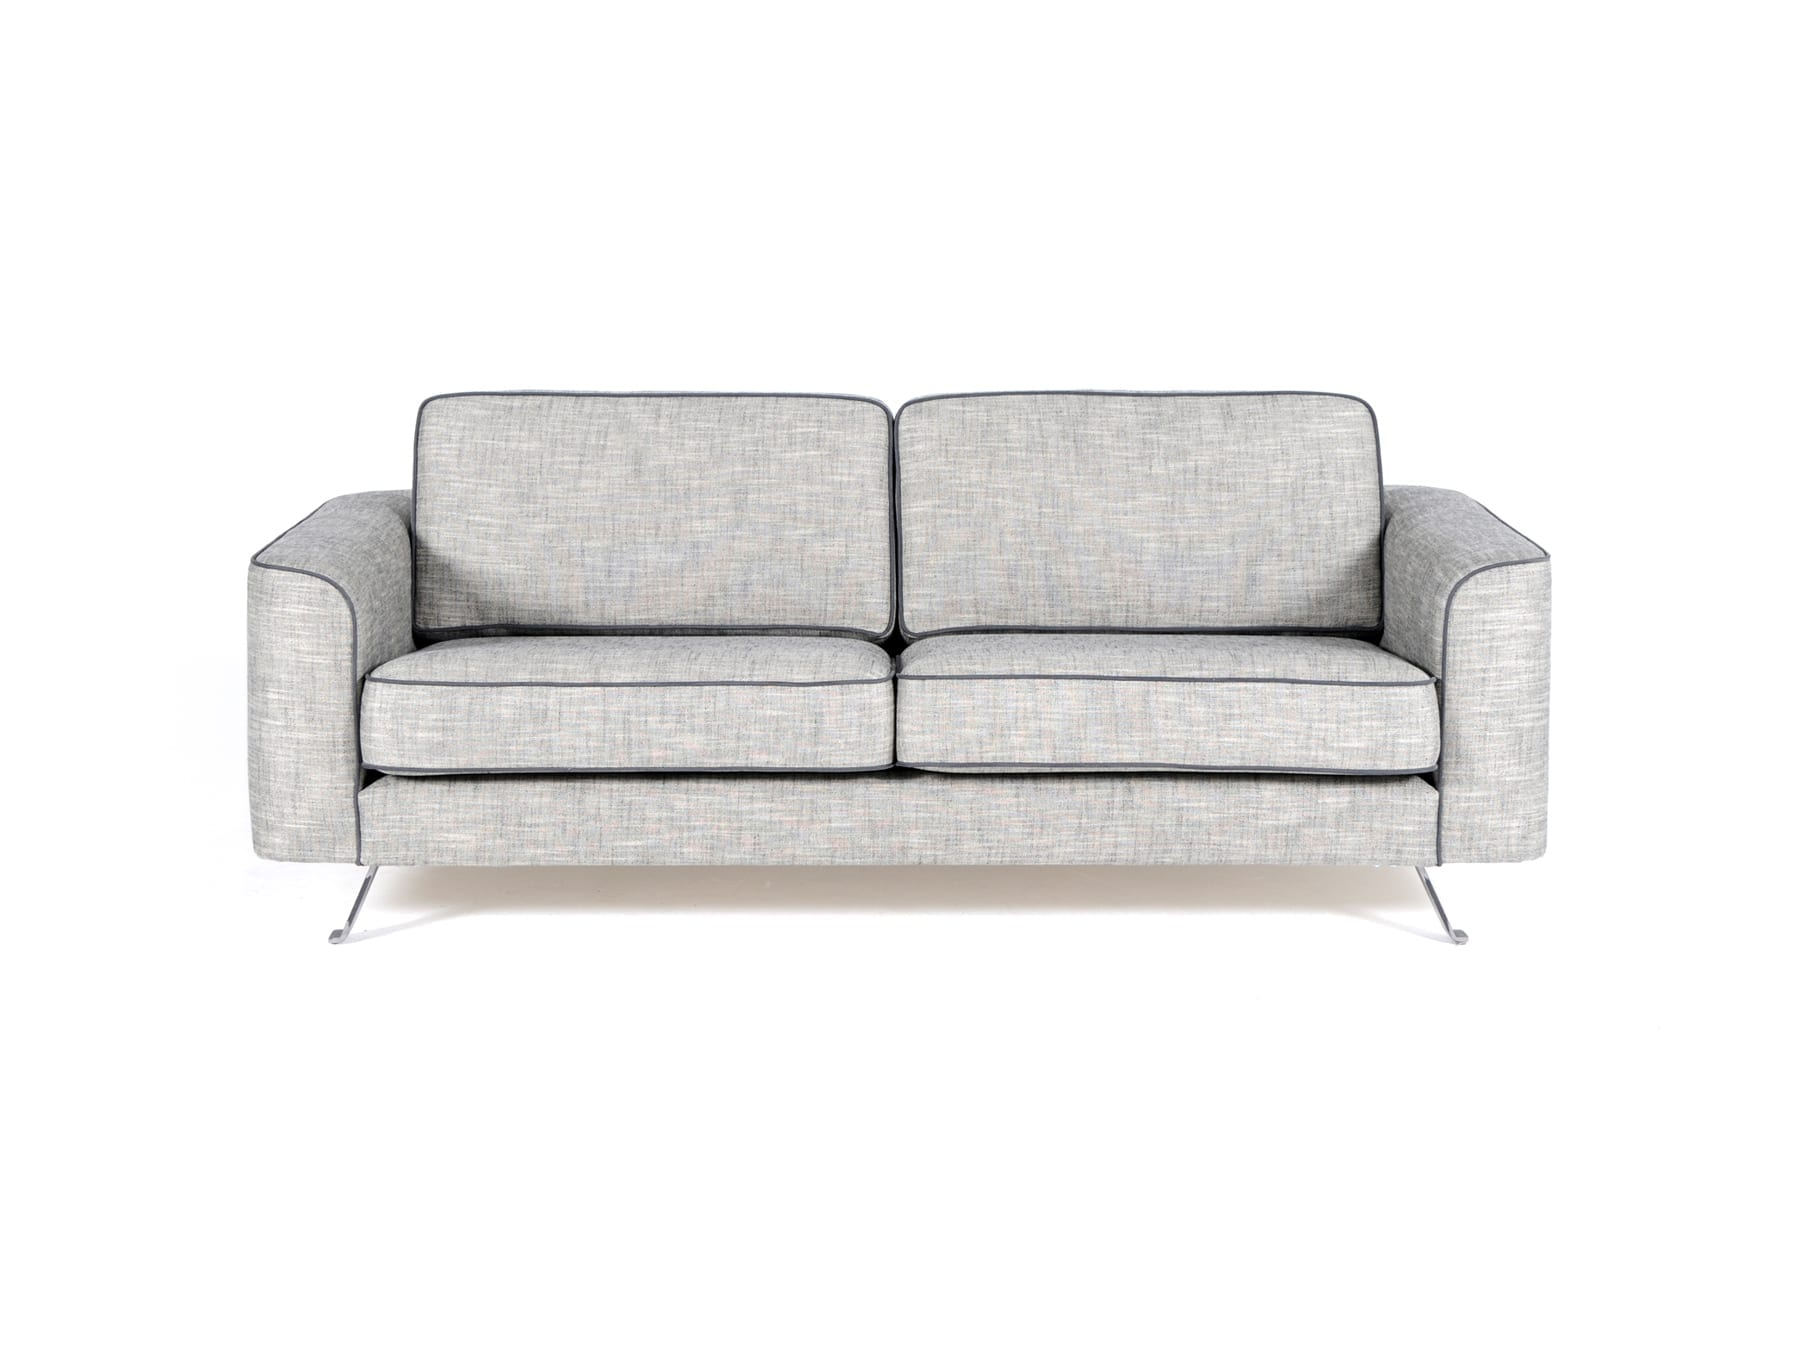 Kovacs Hudson Sofa available at McKenzie & Willis